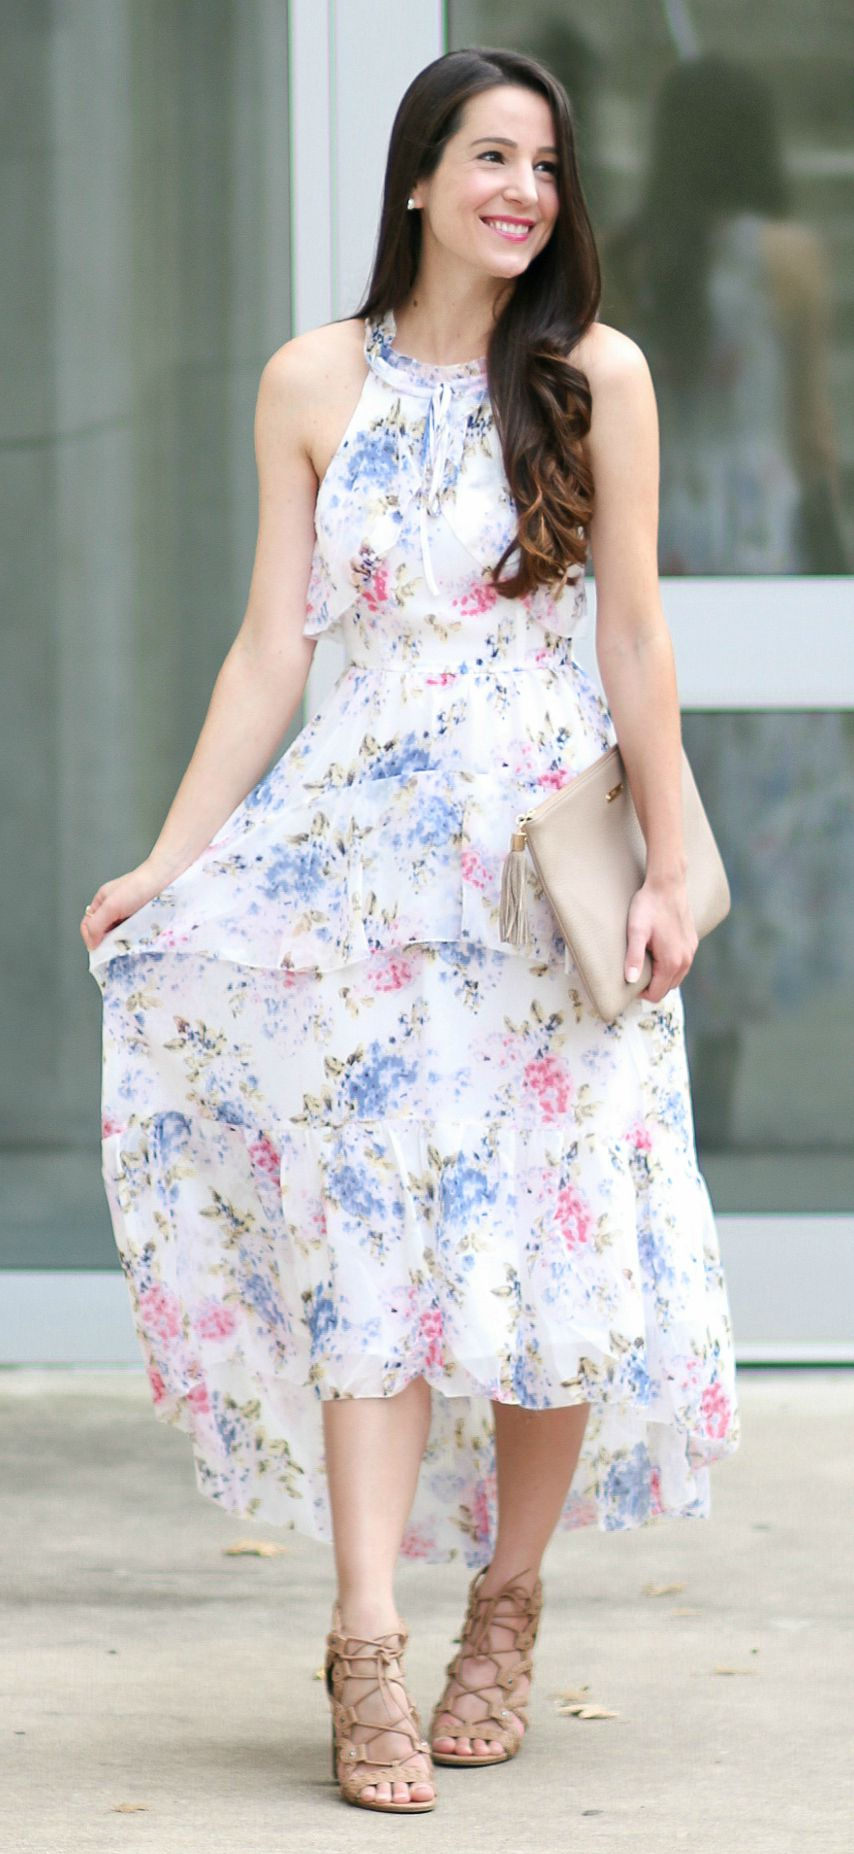 Wearing White To A Wedding After Market Floral Chiffon Maxi Dress Stylish Fall Outfits Floral Chiffon Maxi Dress Fashion [ 1854 x 854 Pixel ]